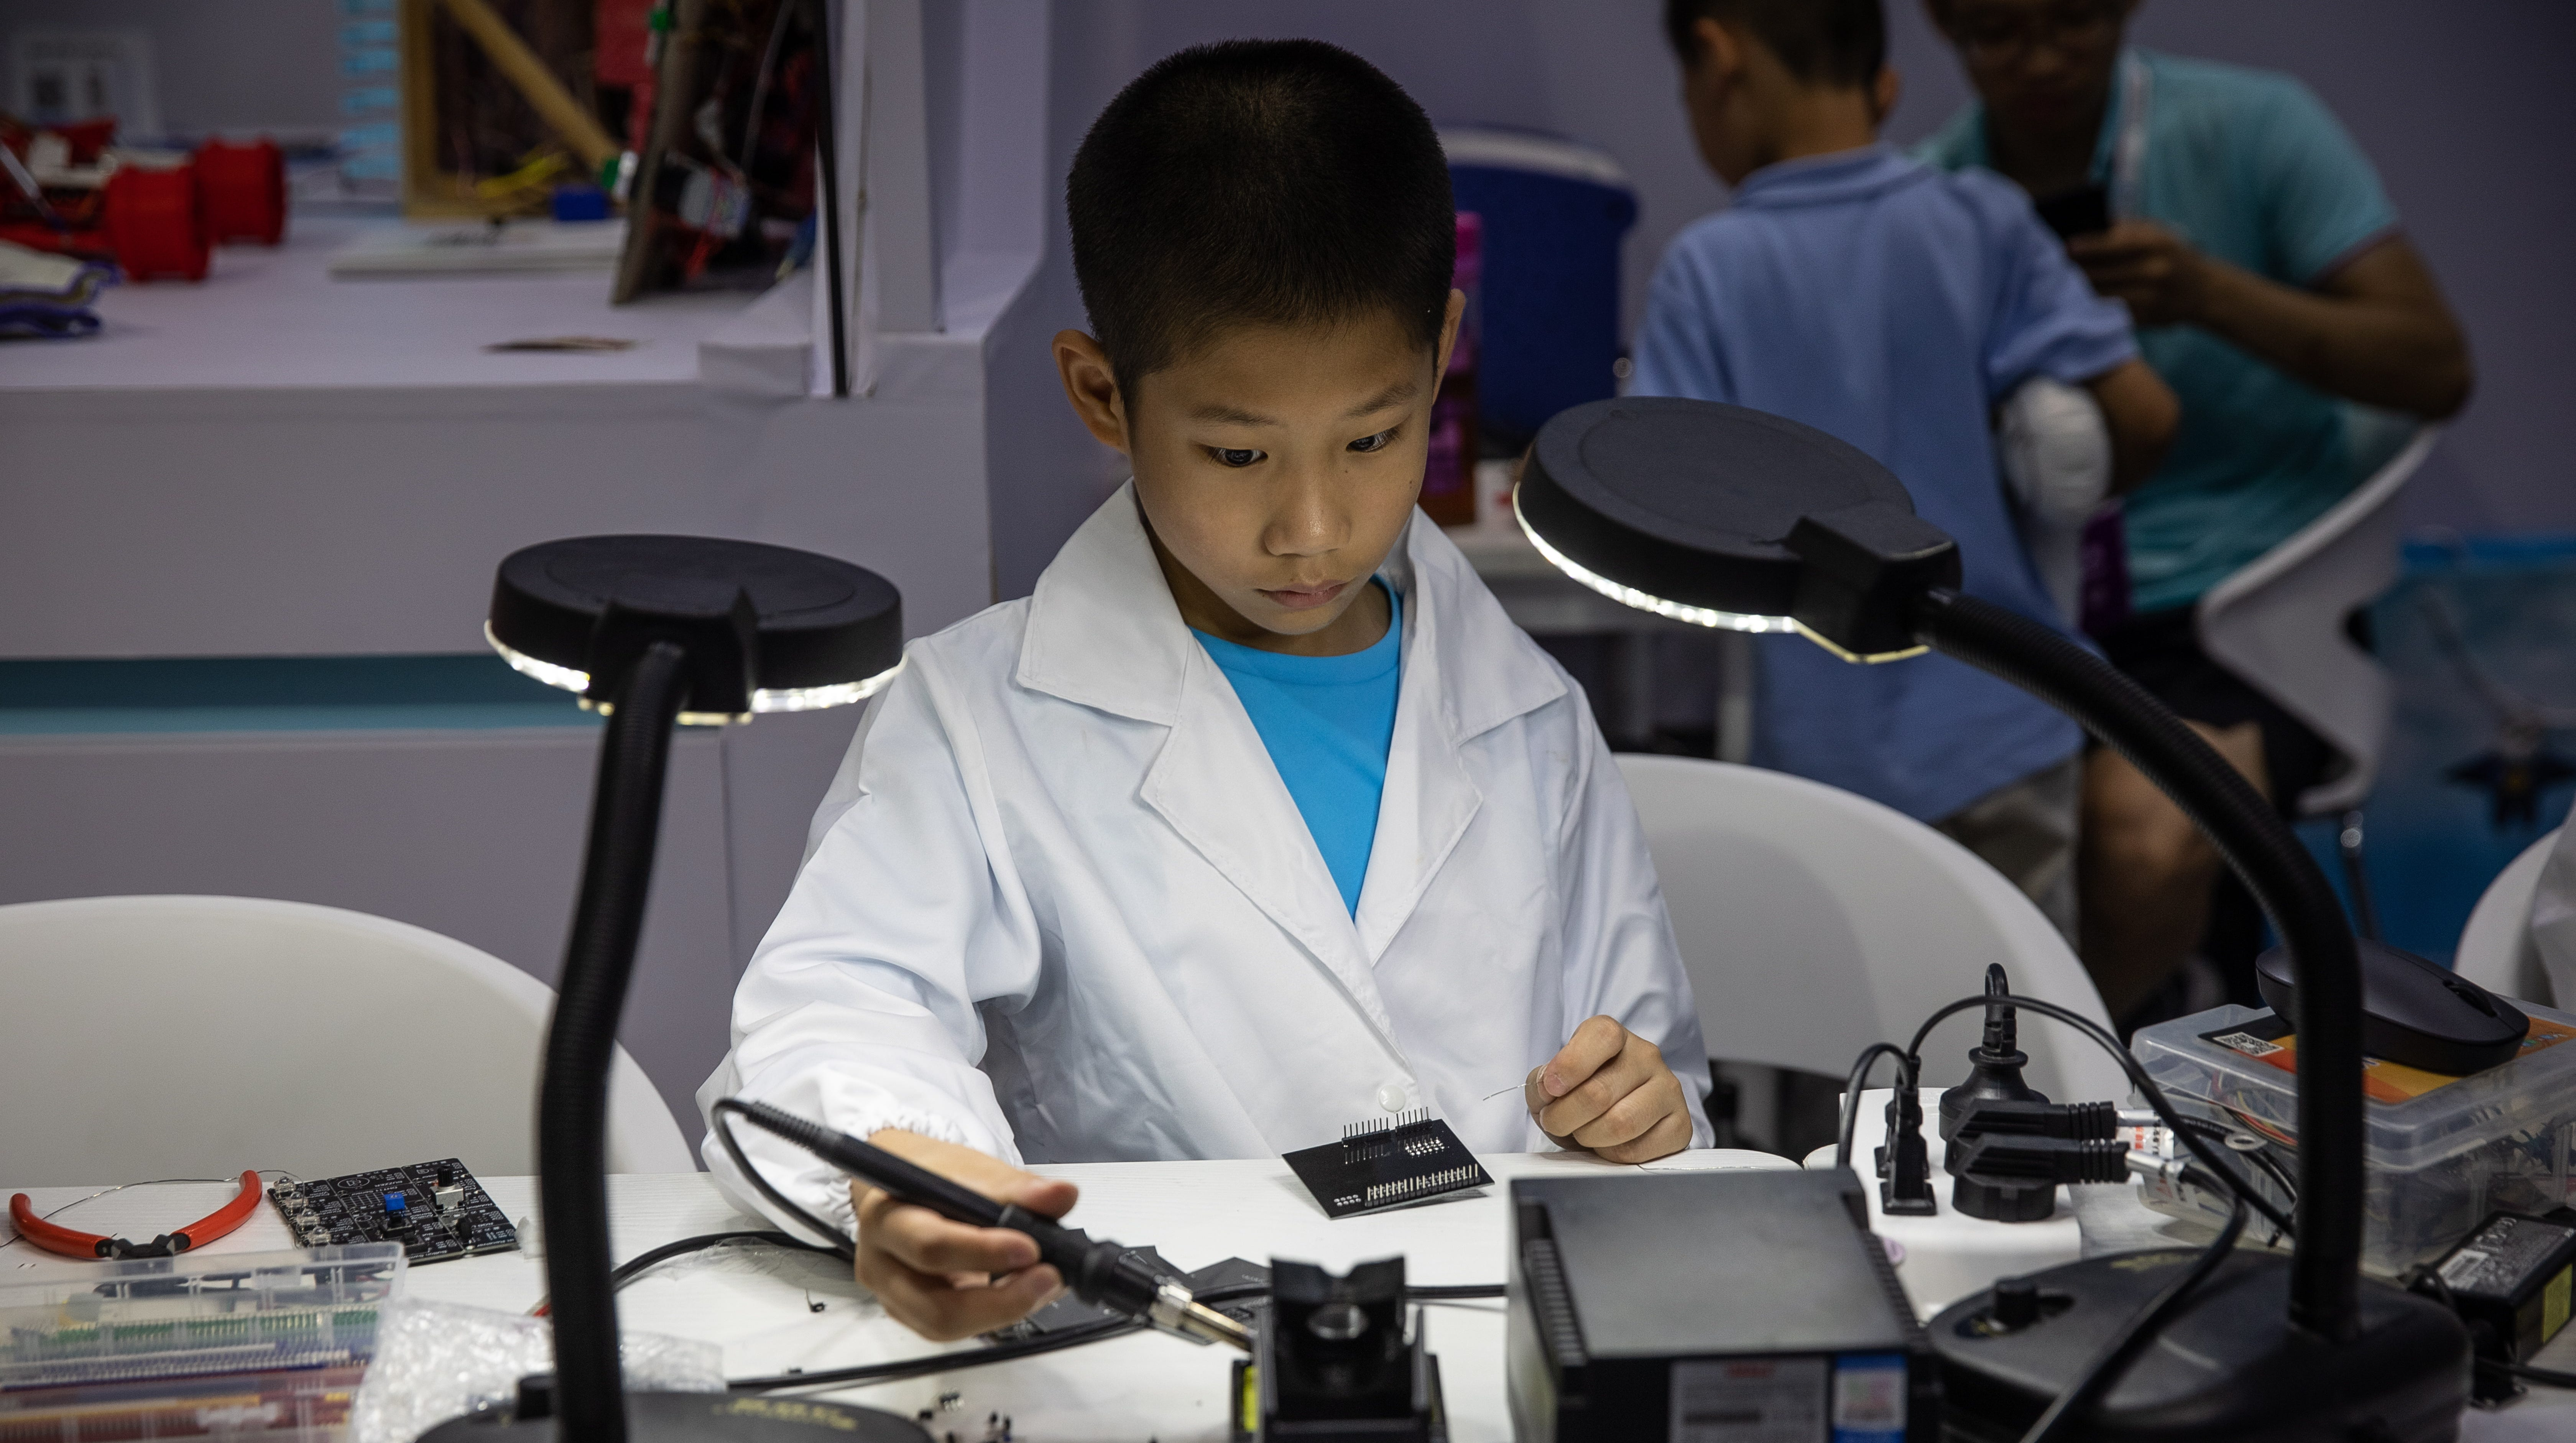 Trade deal or not, US must counter China moves to beat us at science and technology